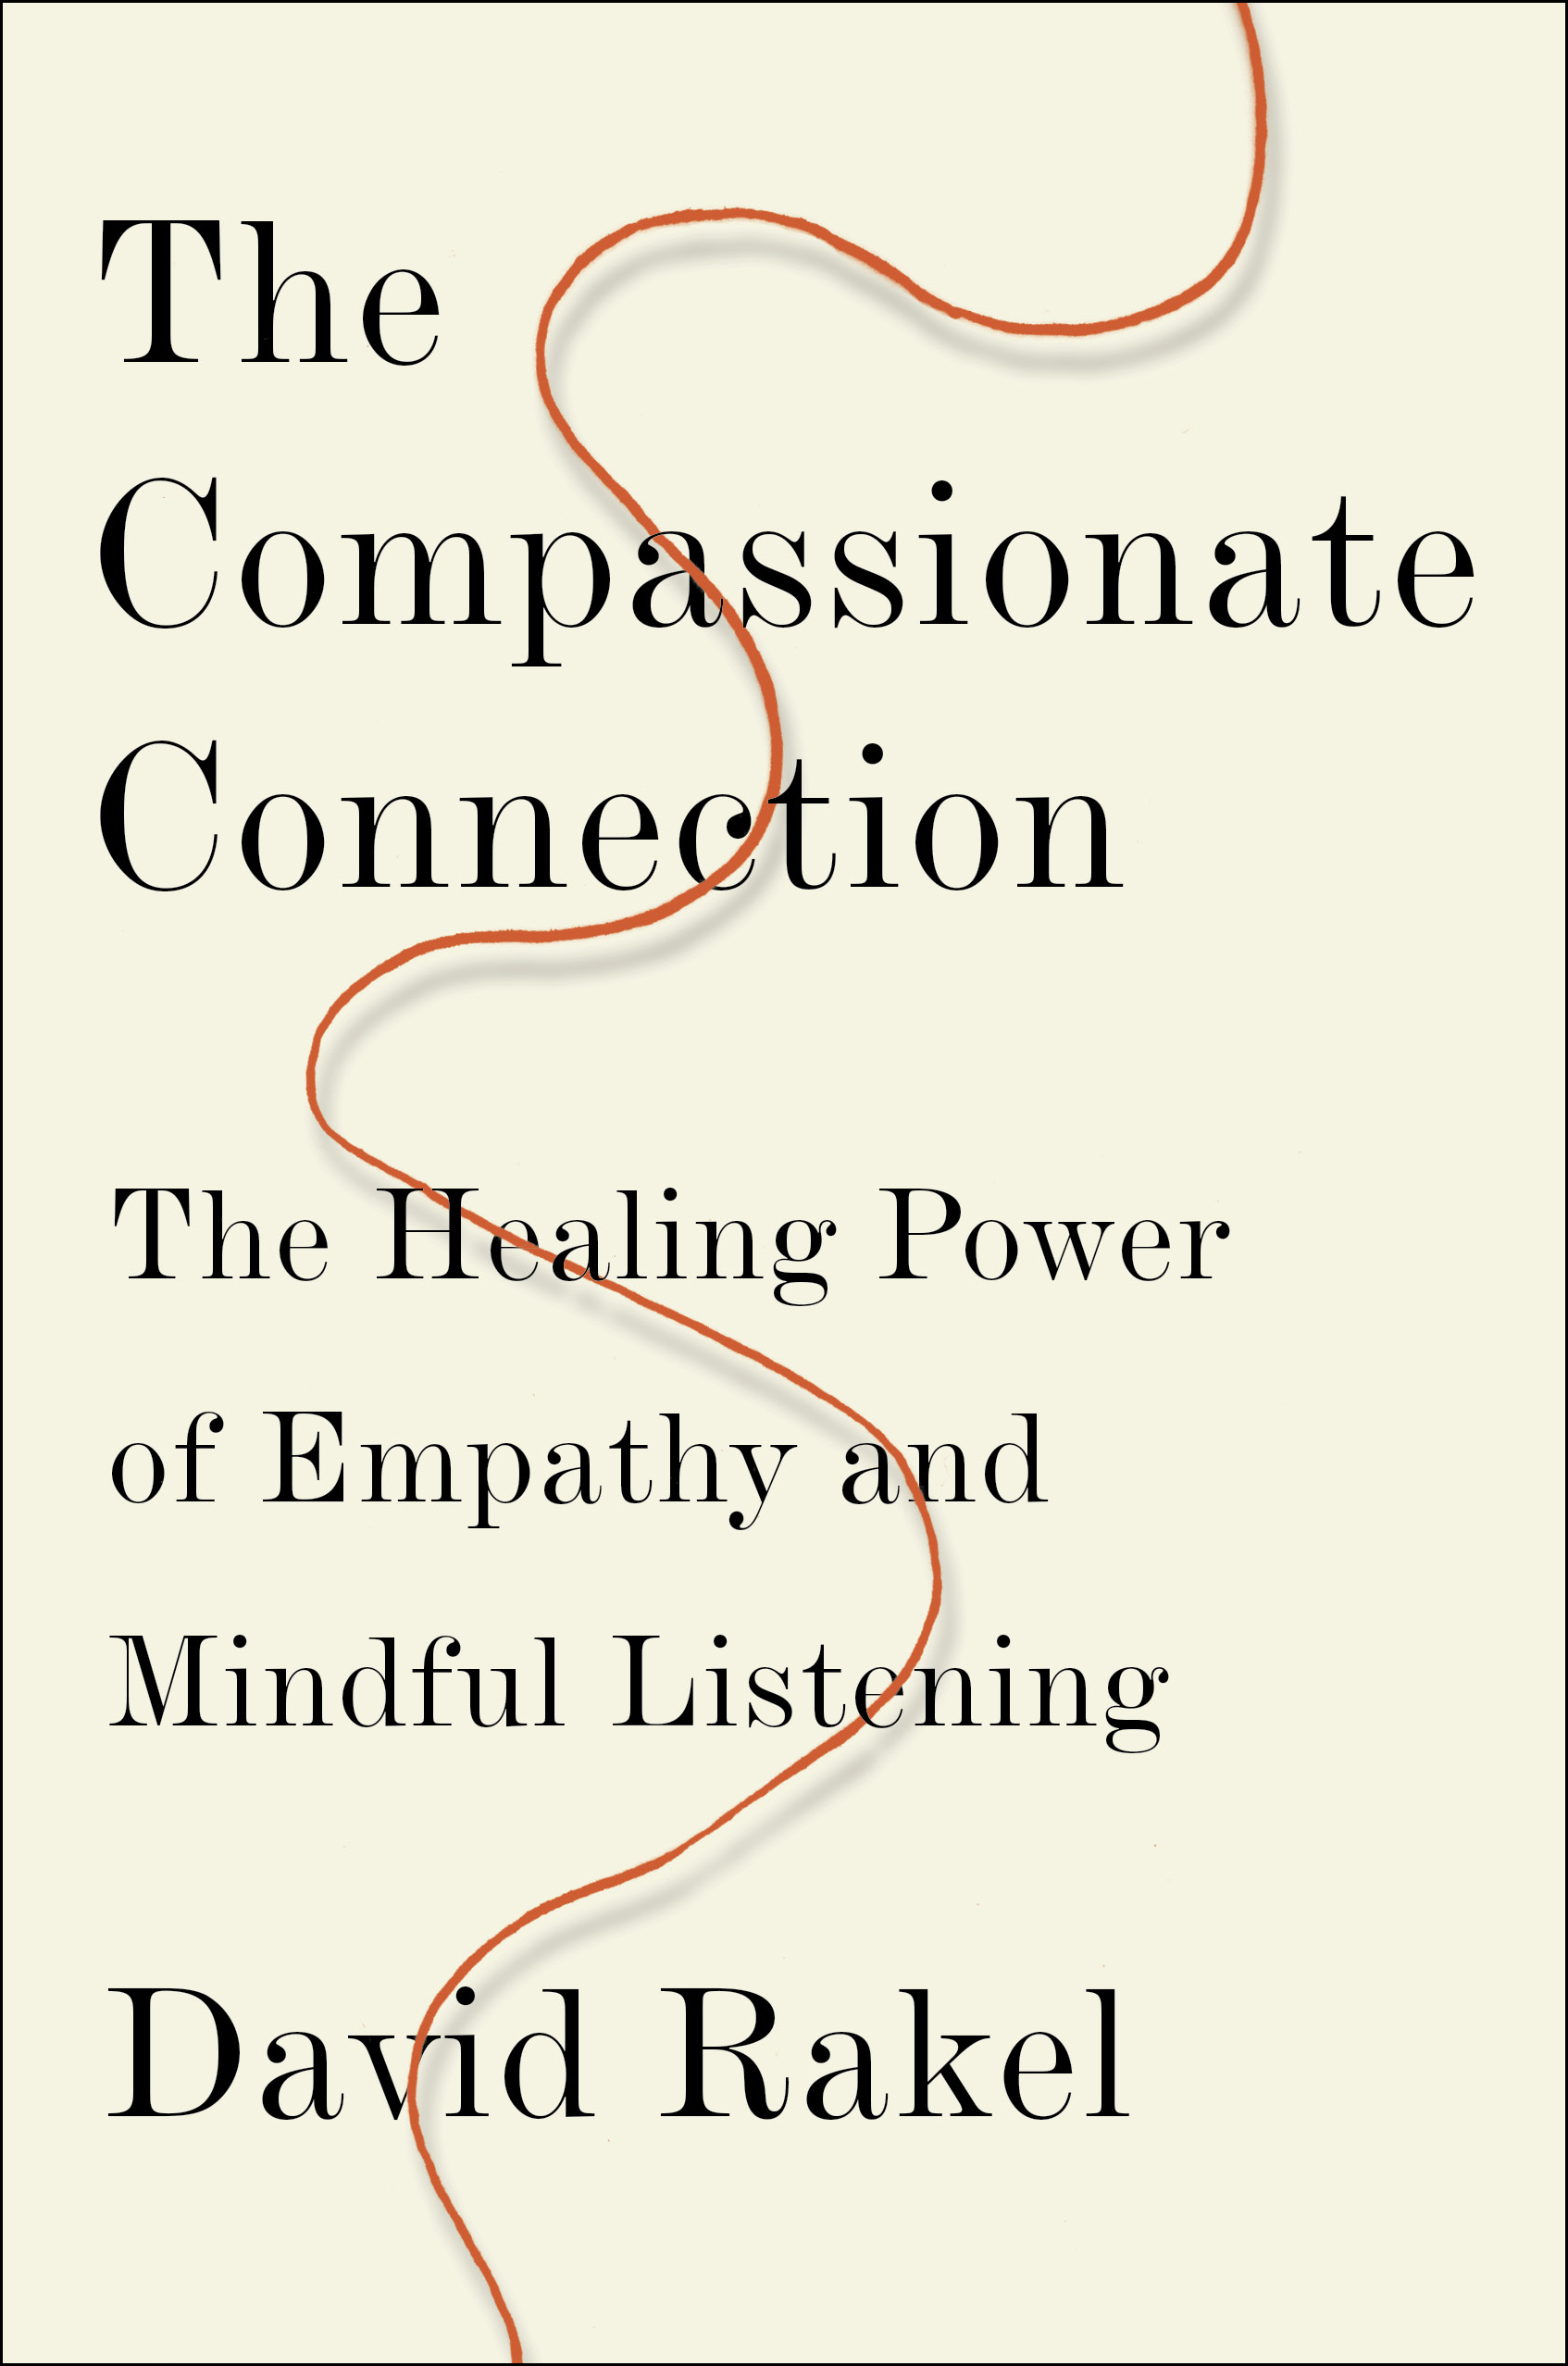 compassionate-connection.jpg